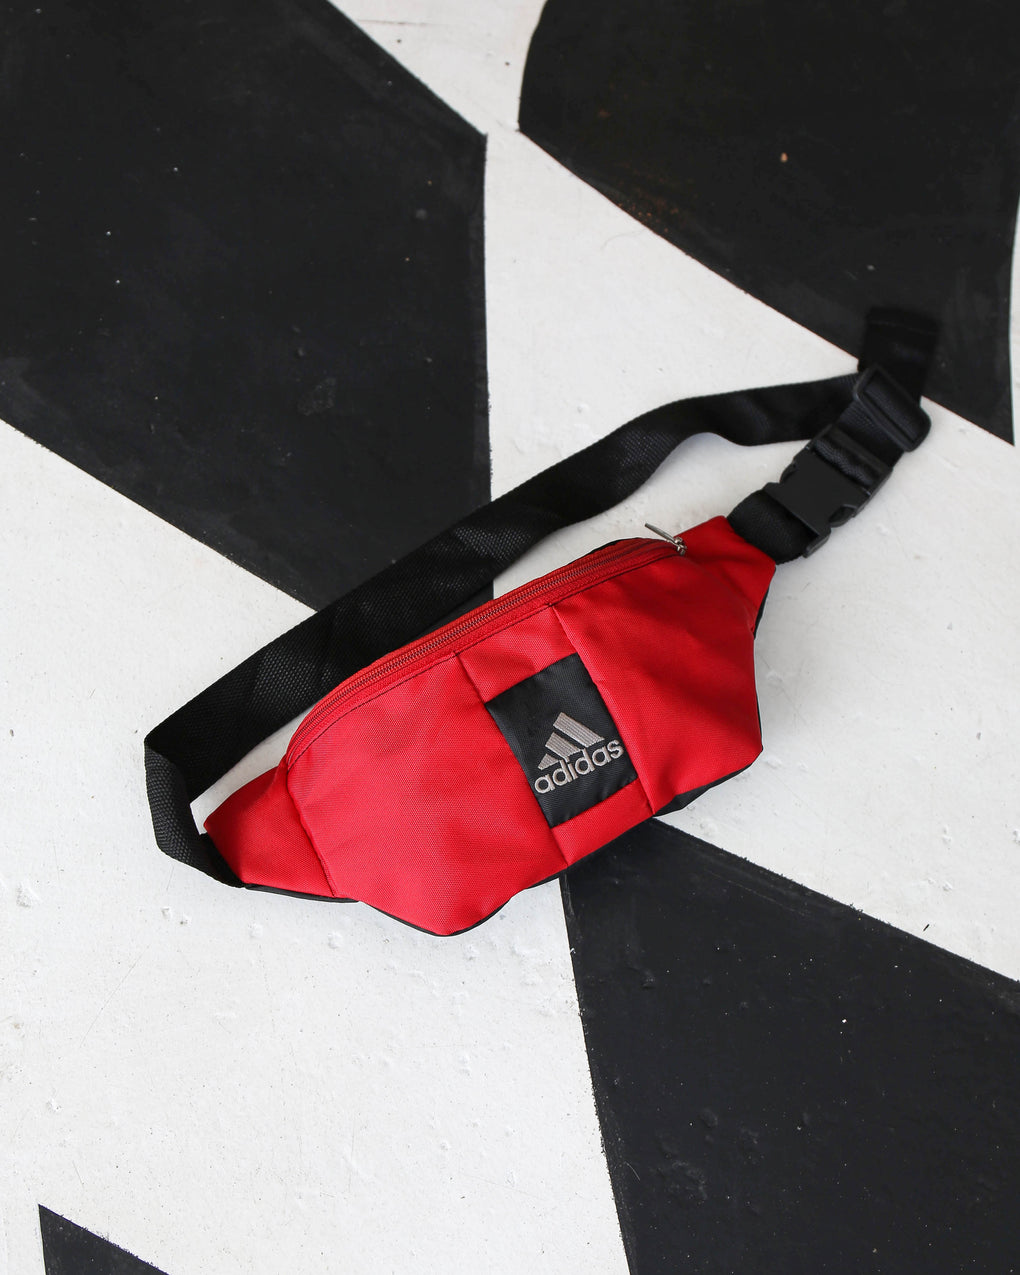 ADIDAS RED HOT BUMBAG - FROTHLYF